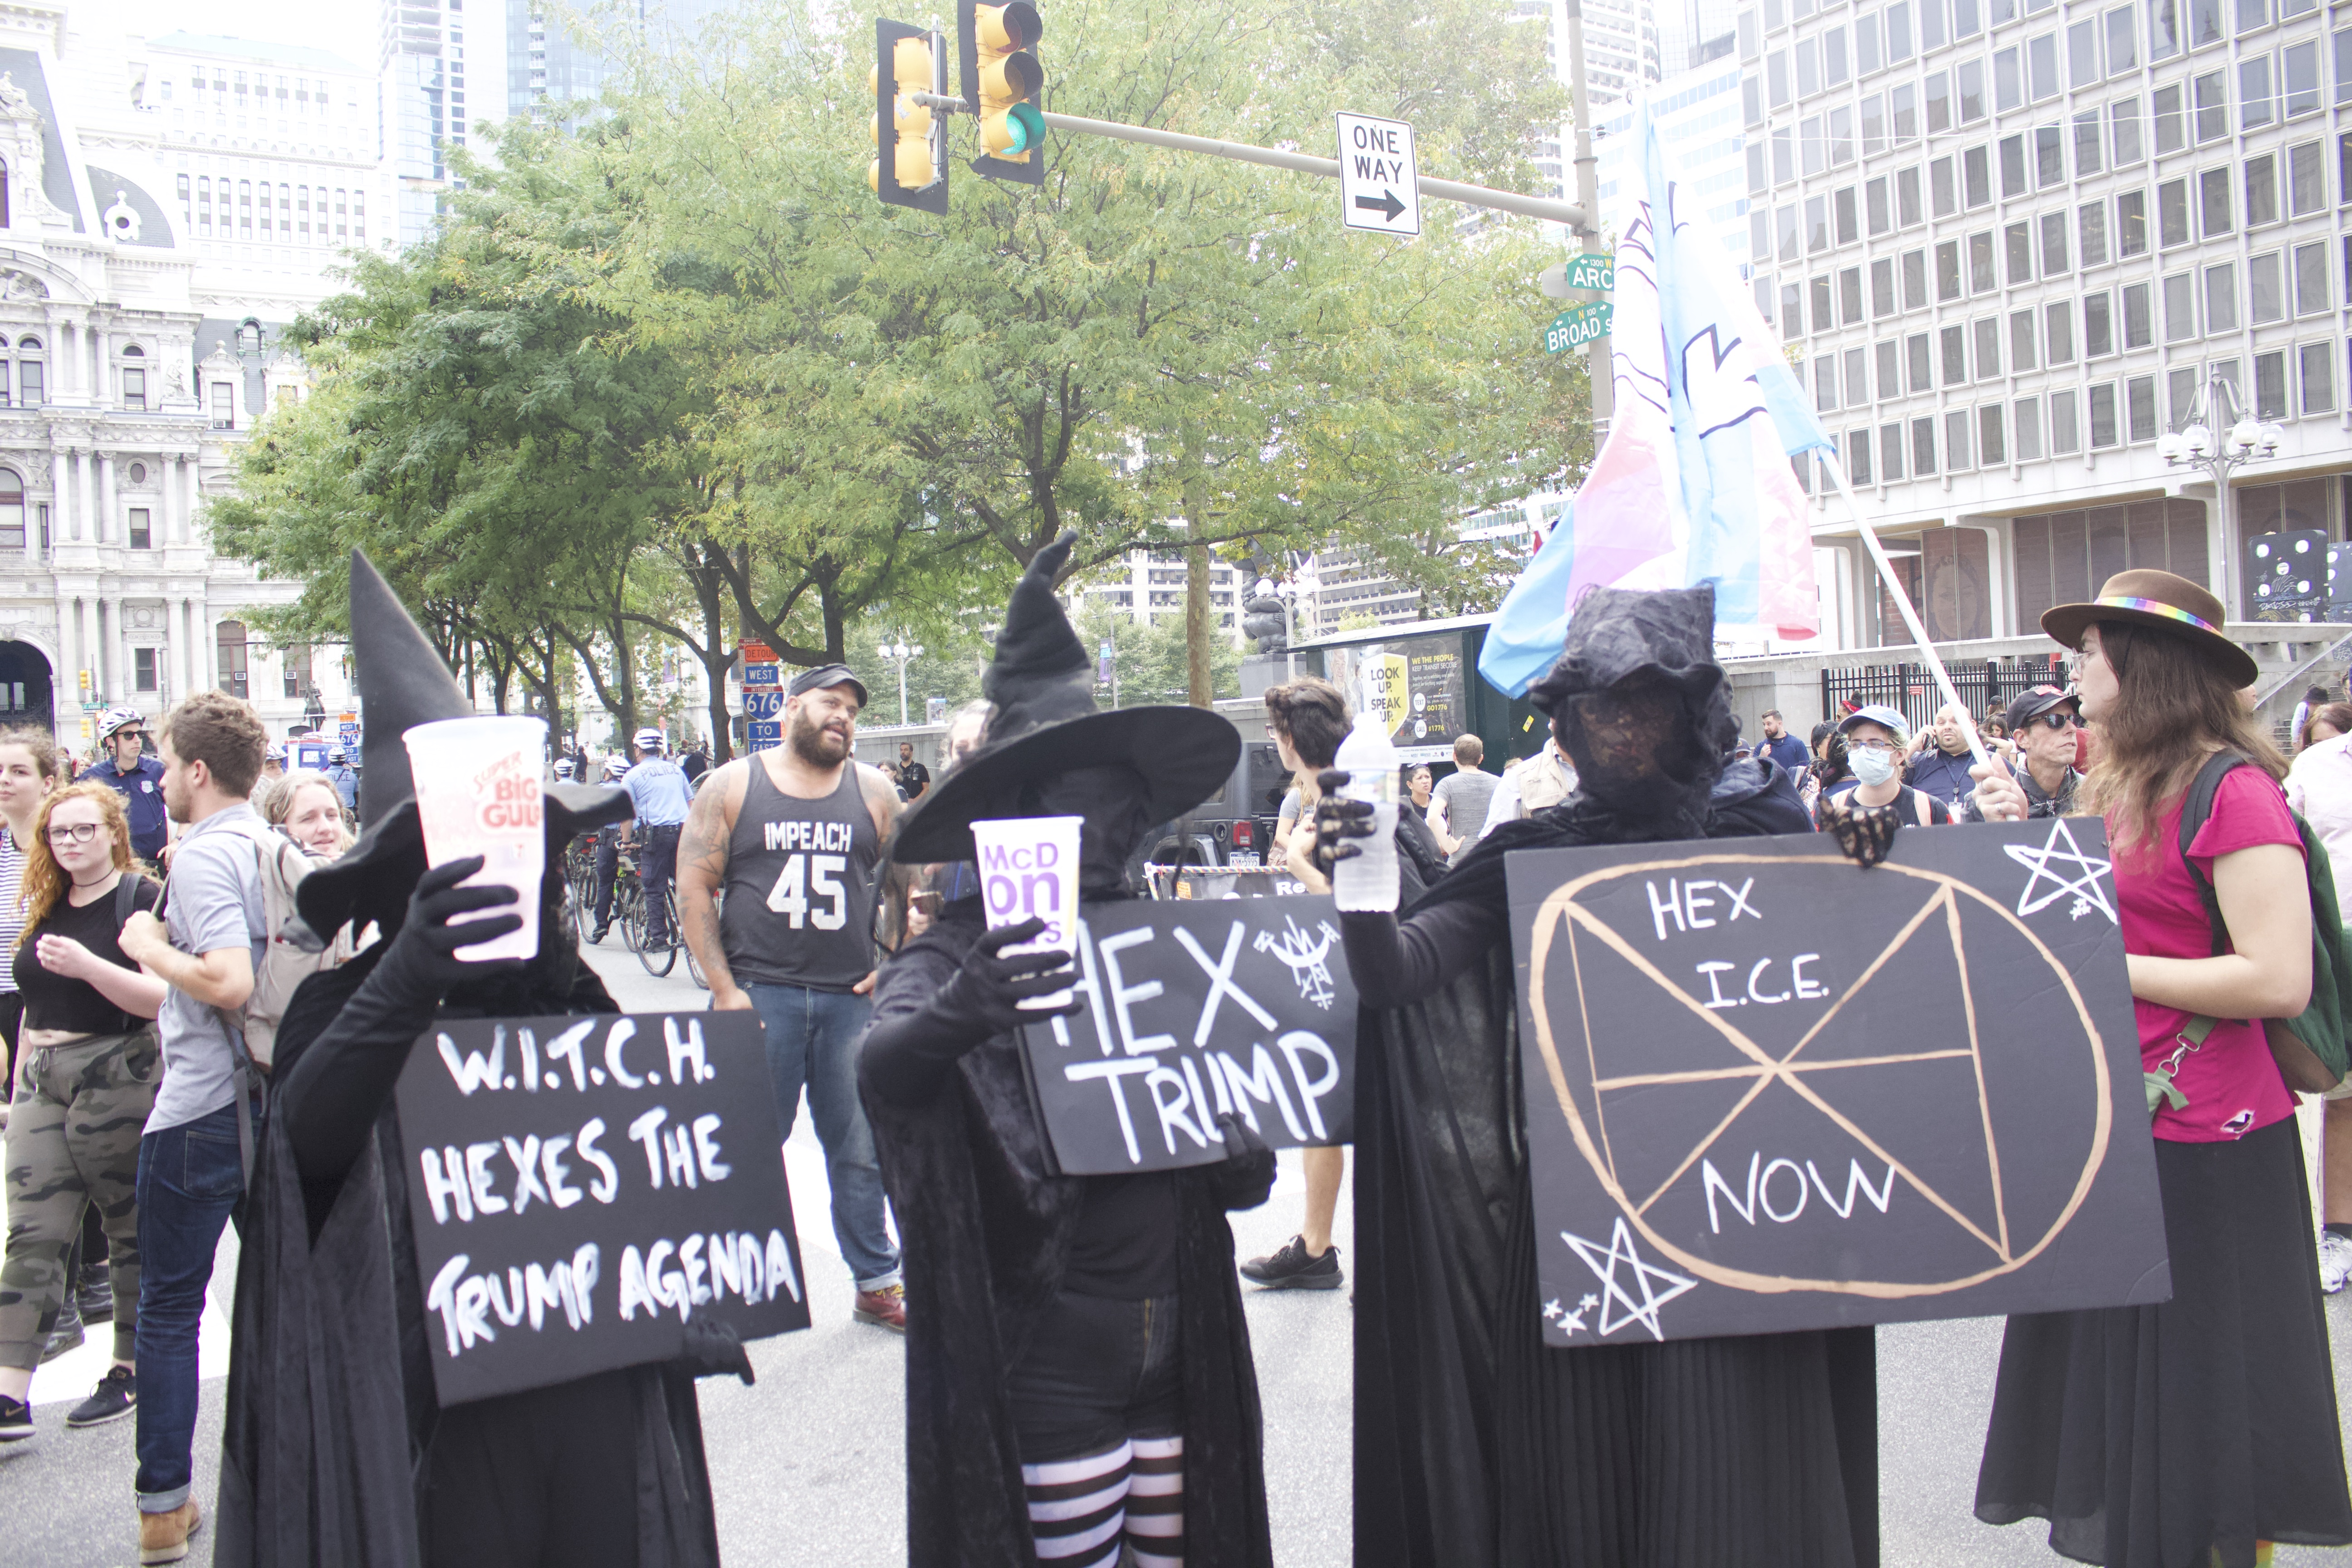 Some witches made it out for the protests